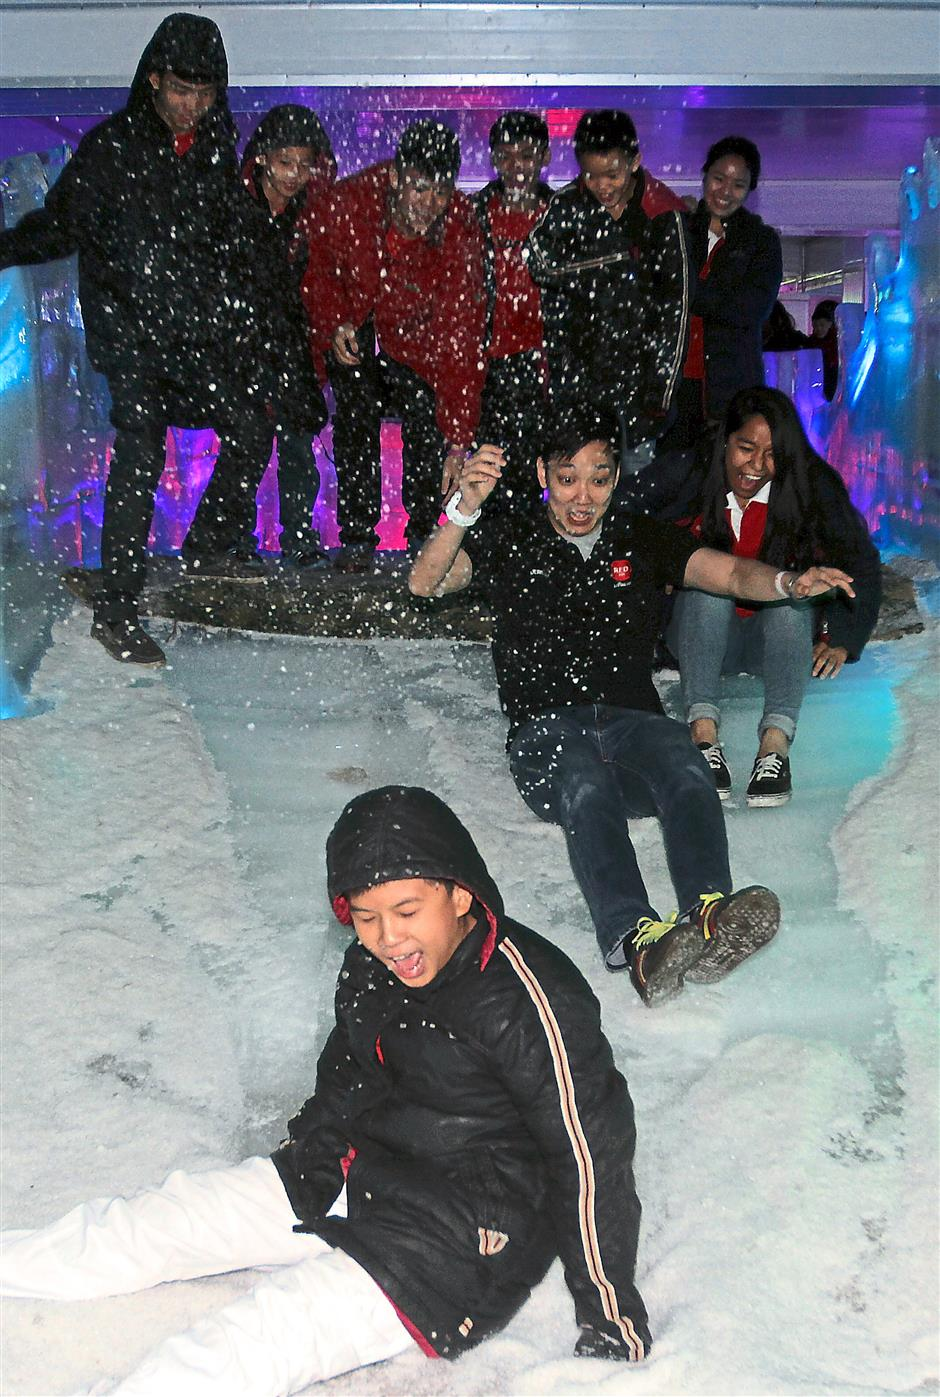 Slippery ice: Red FM's Jeremy (second from right) joining in the fun of sliding down a snowy edge at the Snowalk.